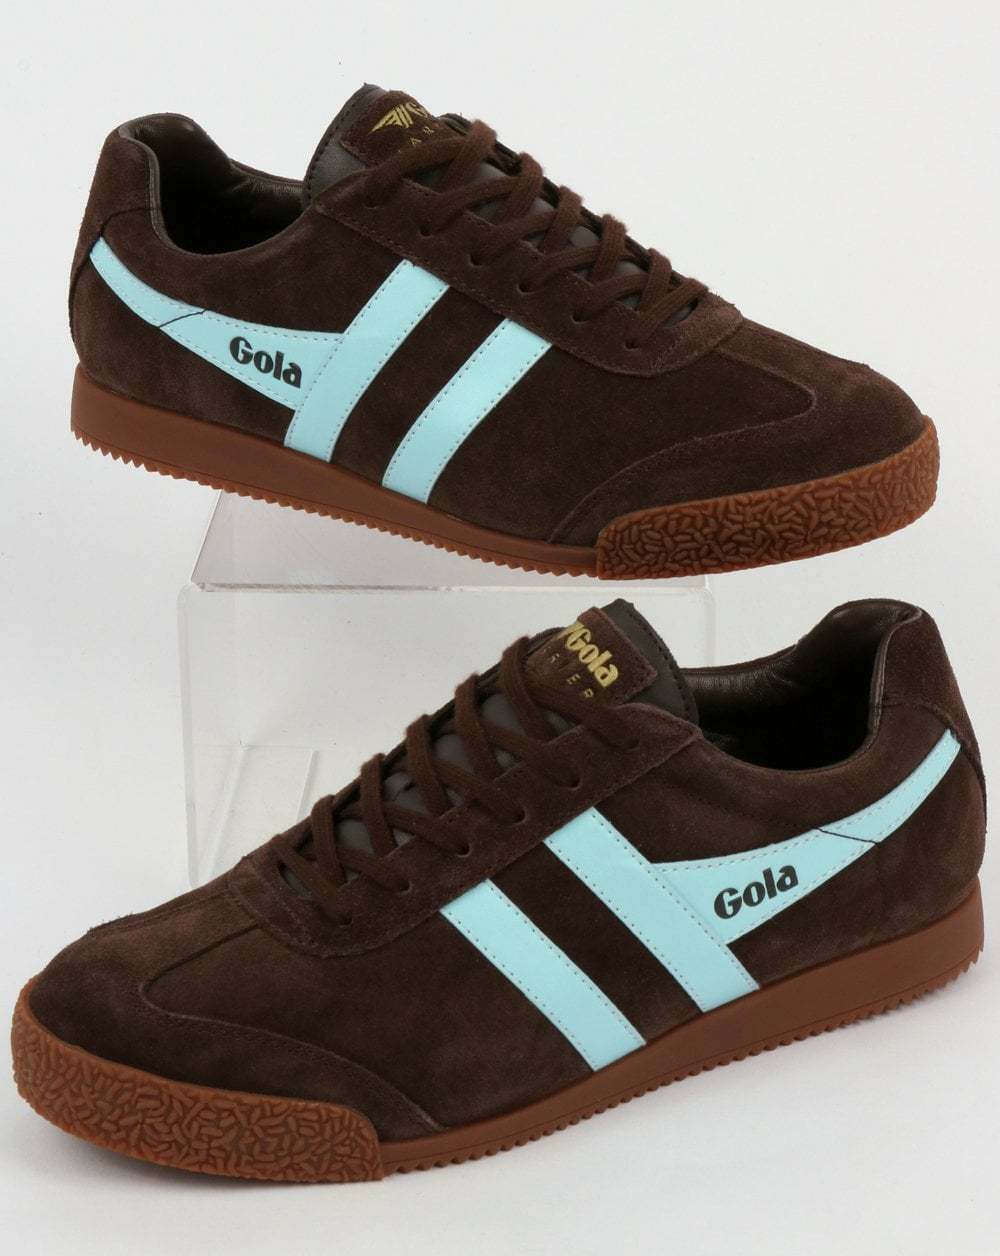 Gola Harrier Suede Trainer in Dark Braun & Sky Blau sole - retro classic gum sole Blau 80b53d